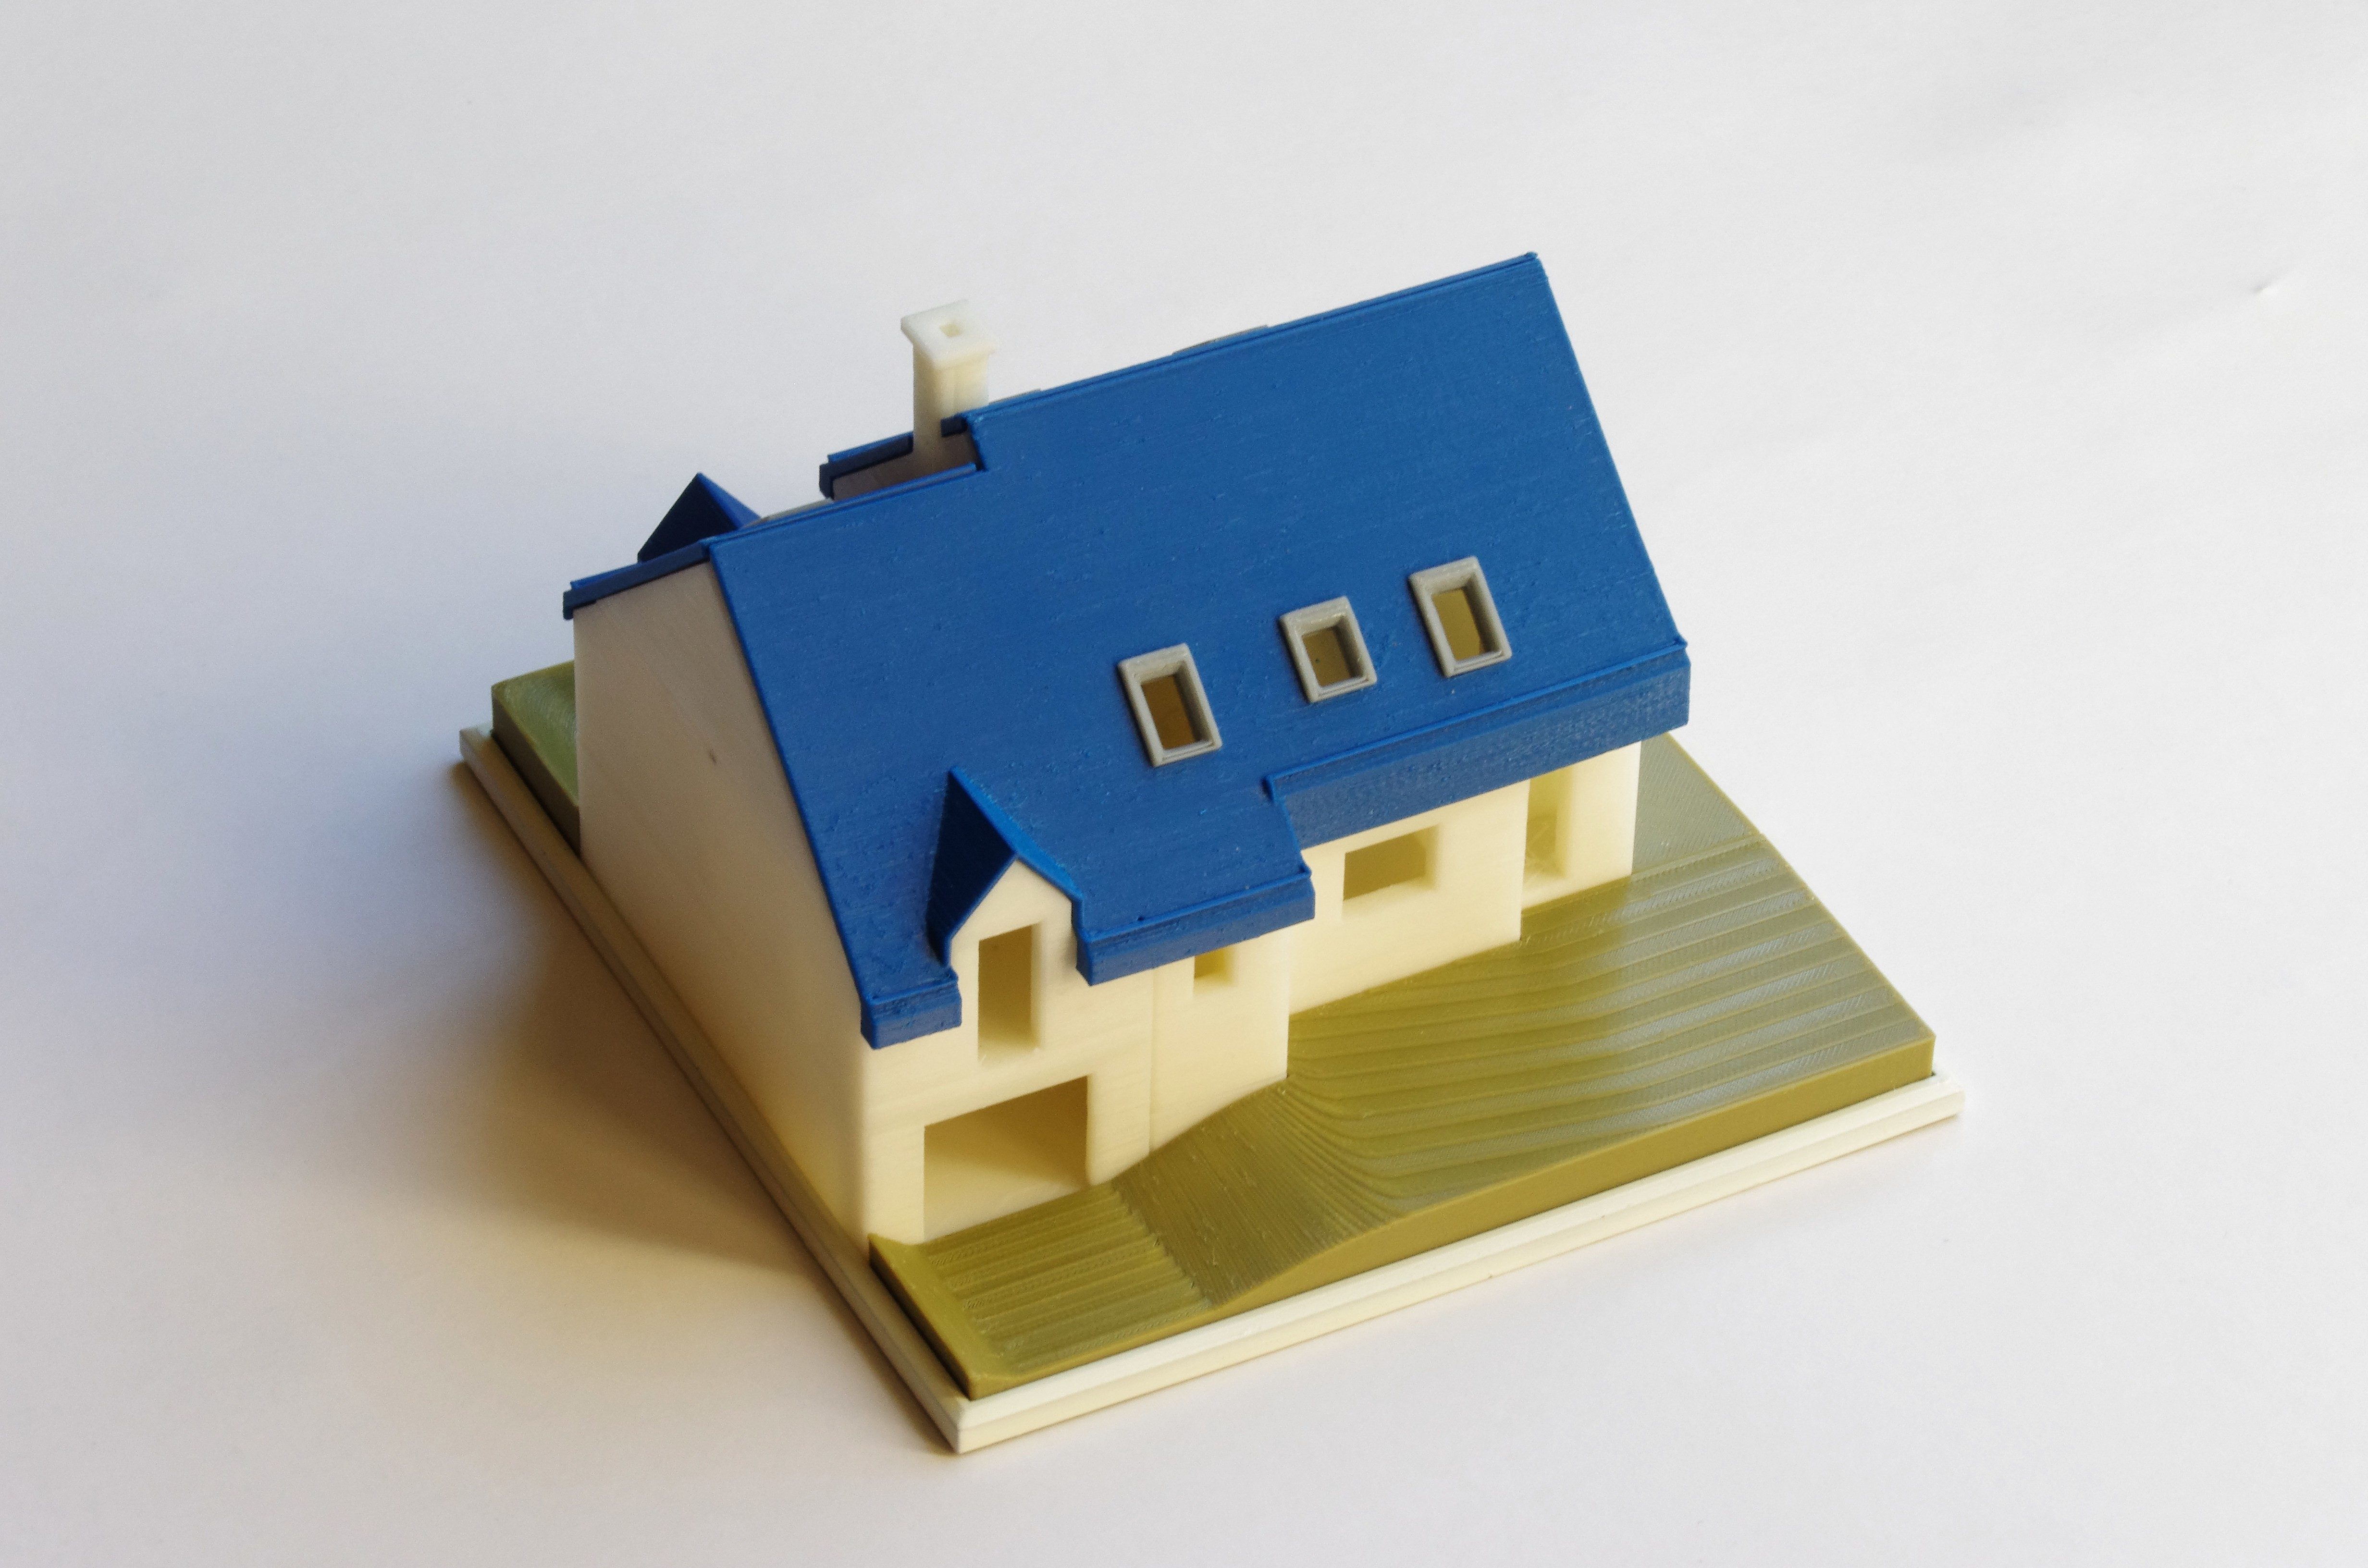 IMGP4609_DxO_red.jpg Download free STL file Semi-detached house • 3D printer model, mcbat